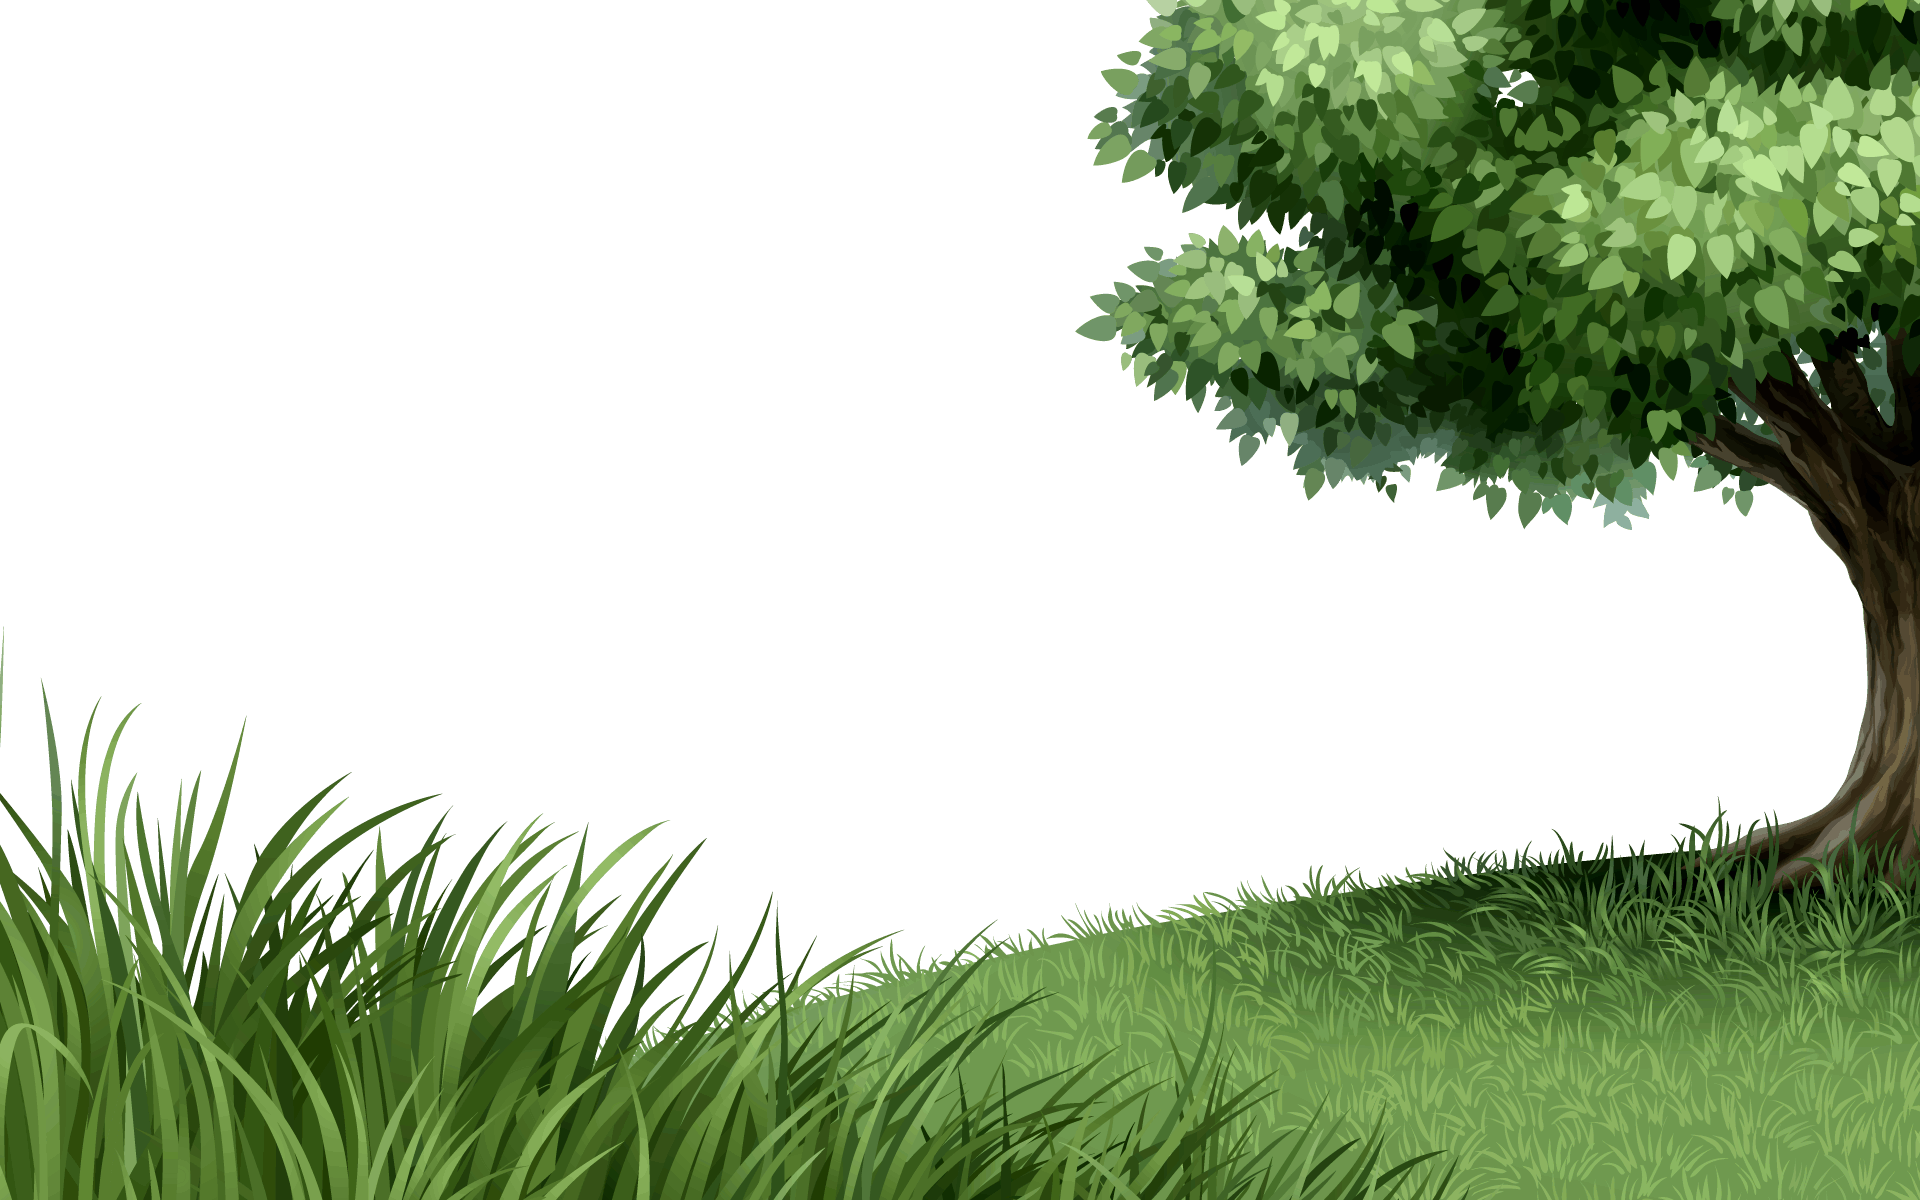 Png Background Hd